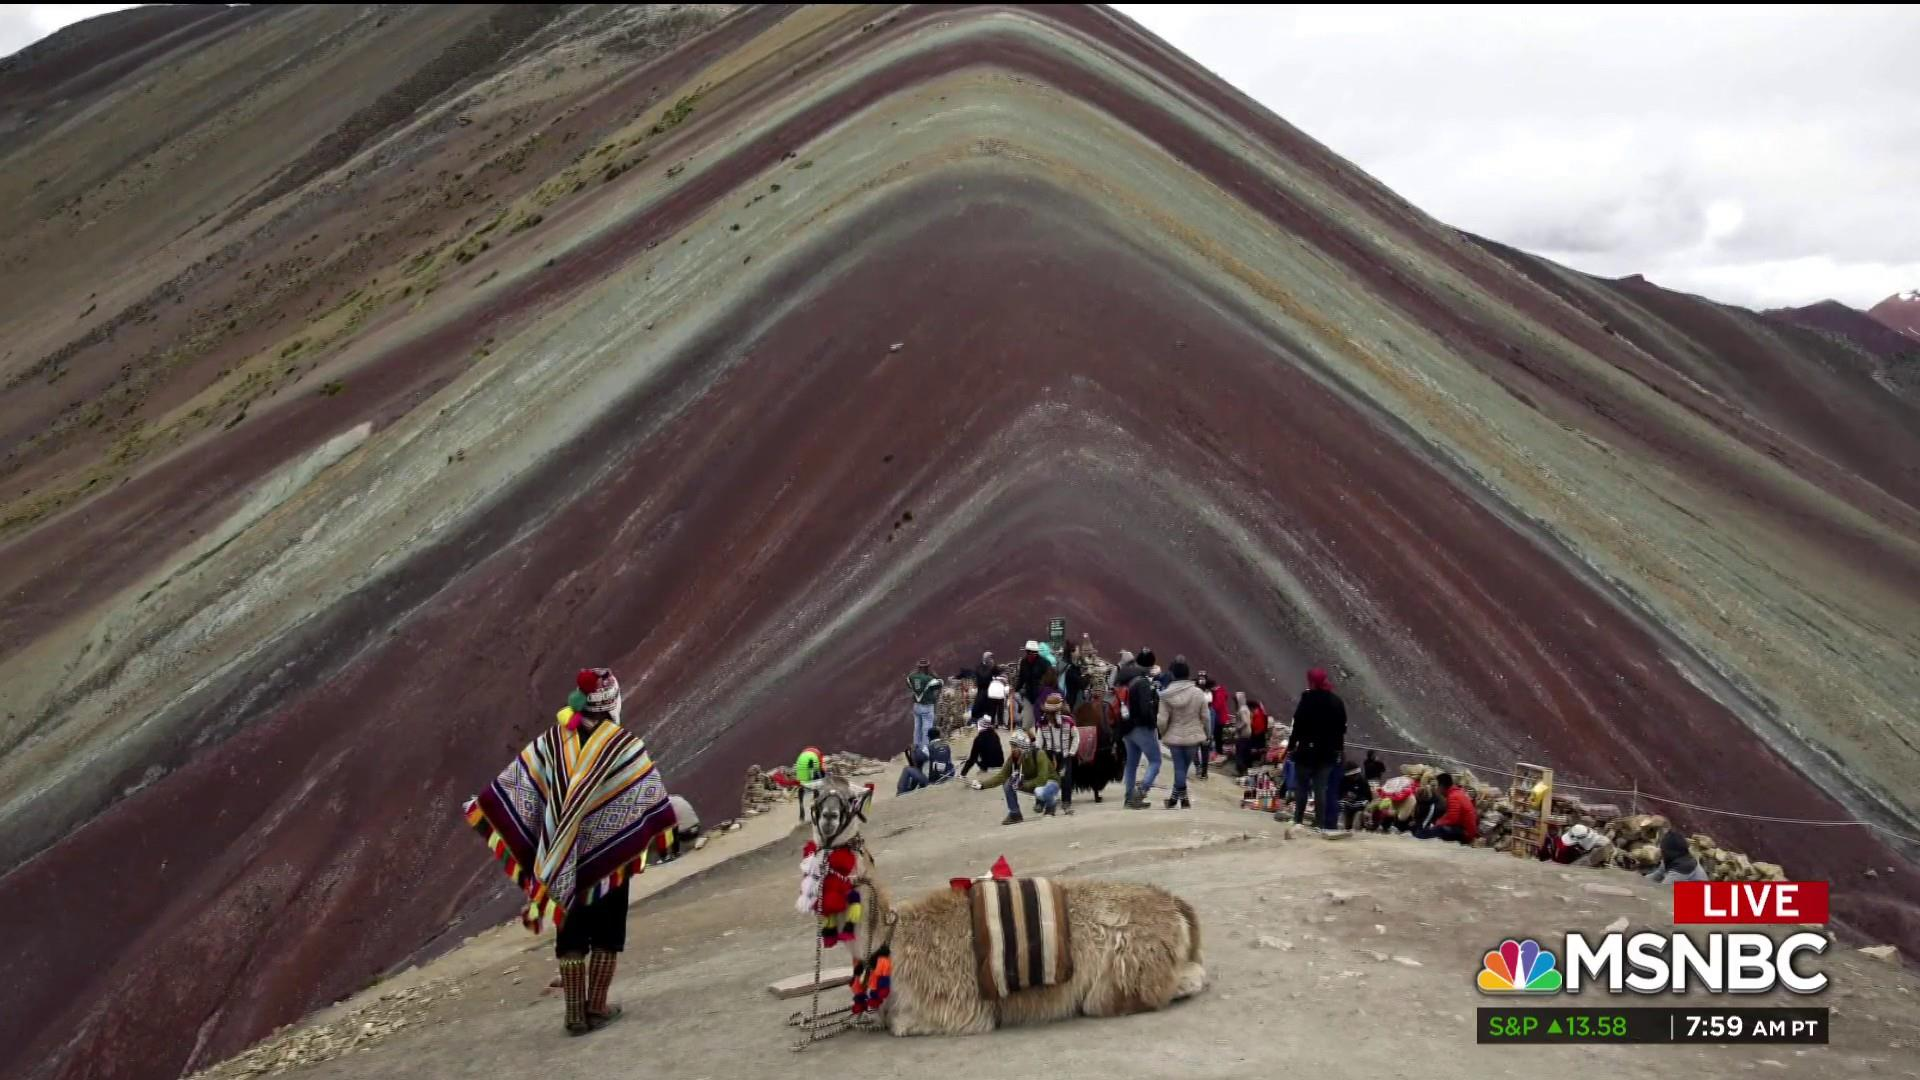 #BIGPICTURE: 'Rainbow Mountain' faces danger in wake of tourists